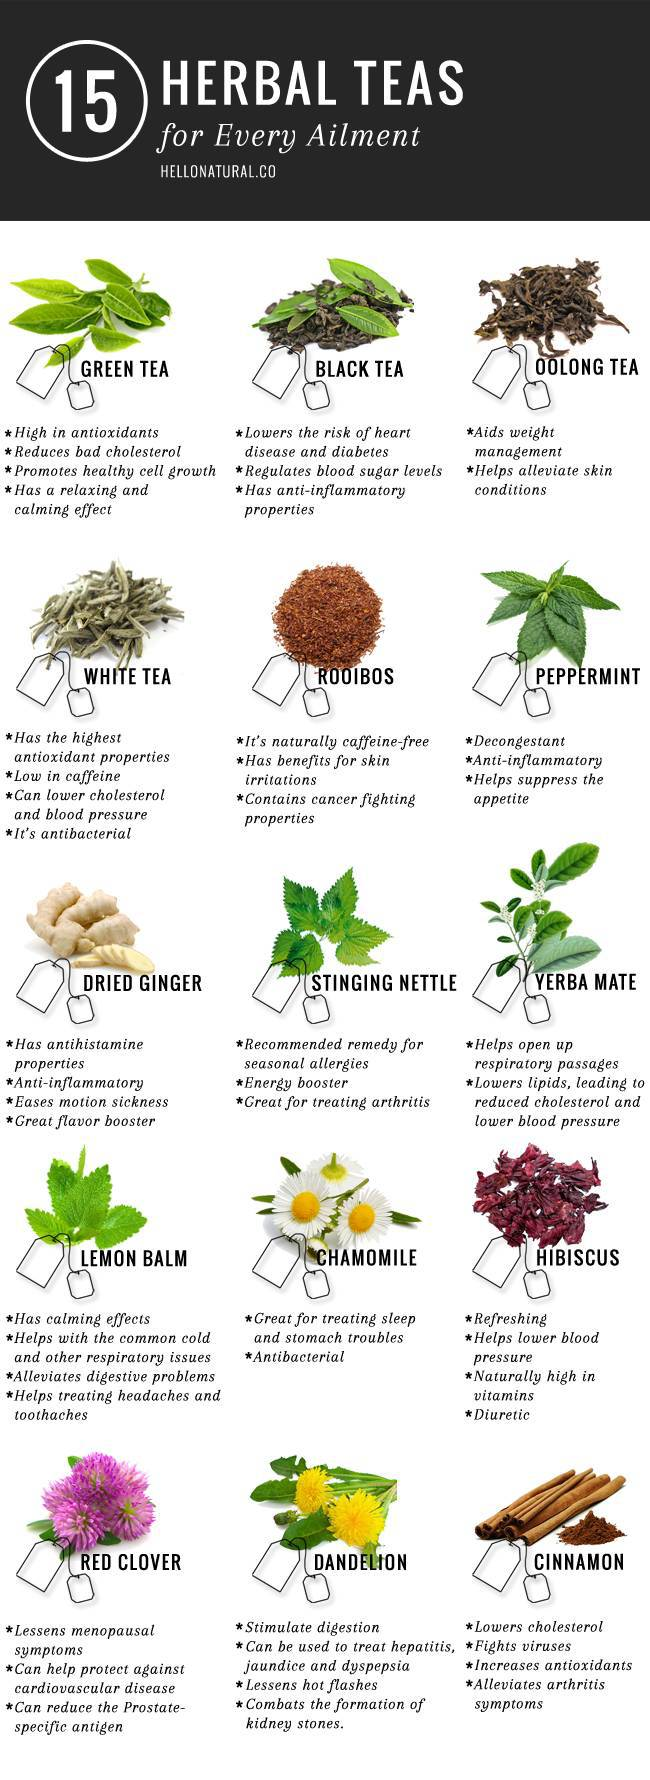 teas for every ailment